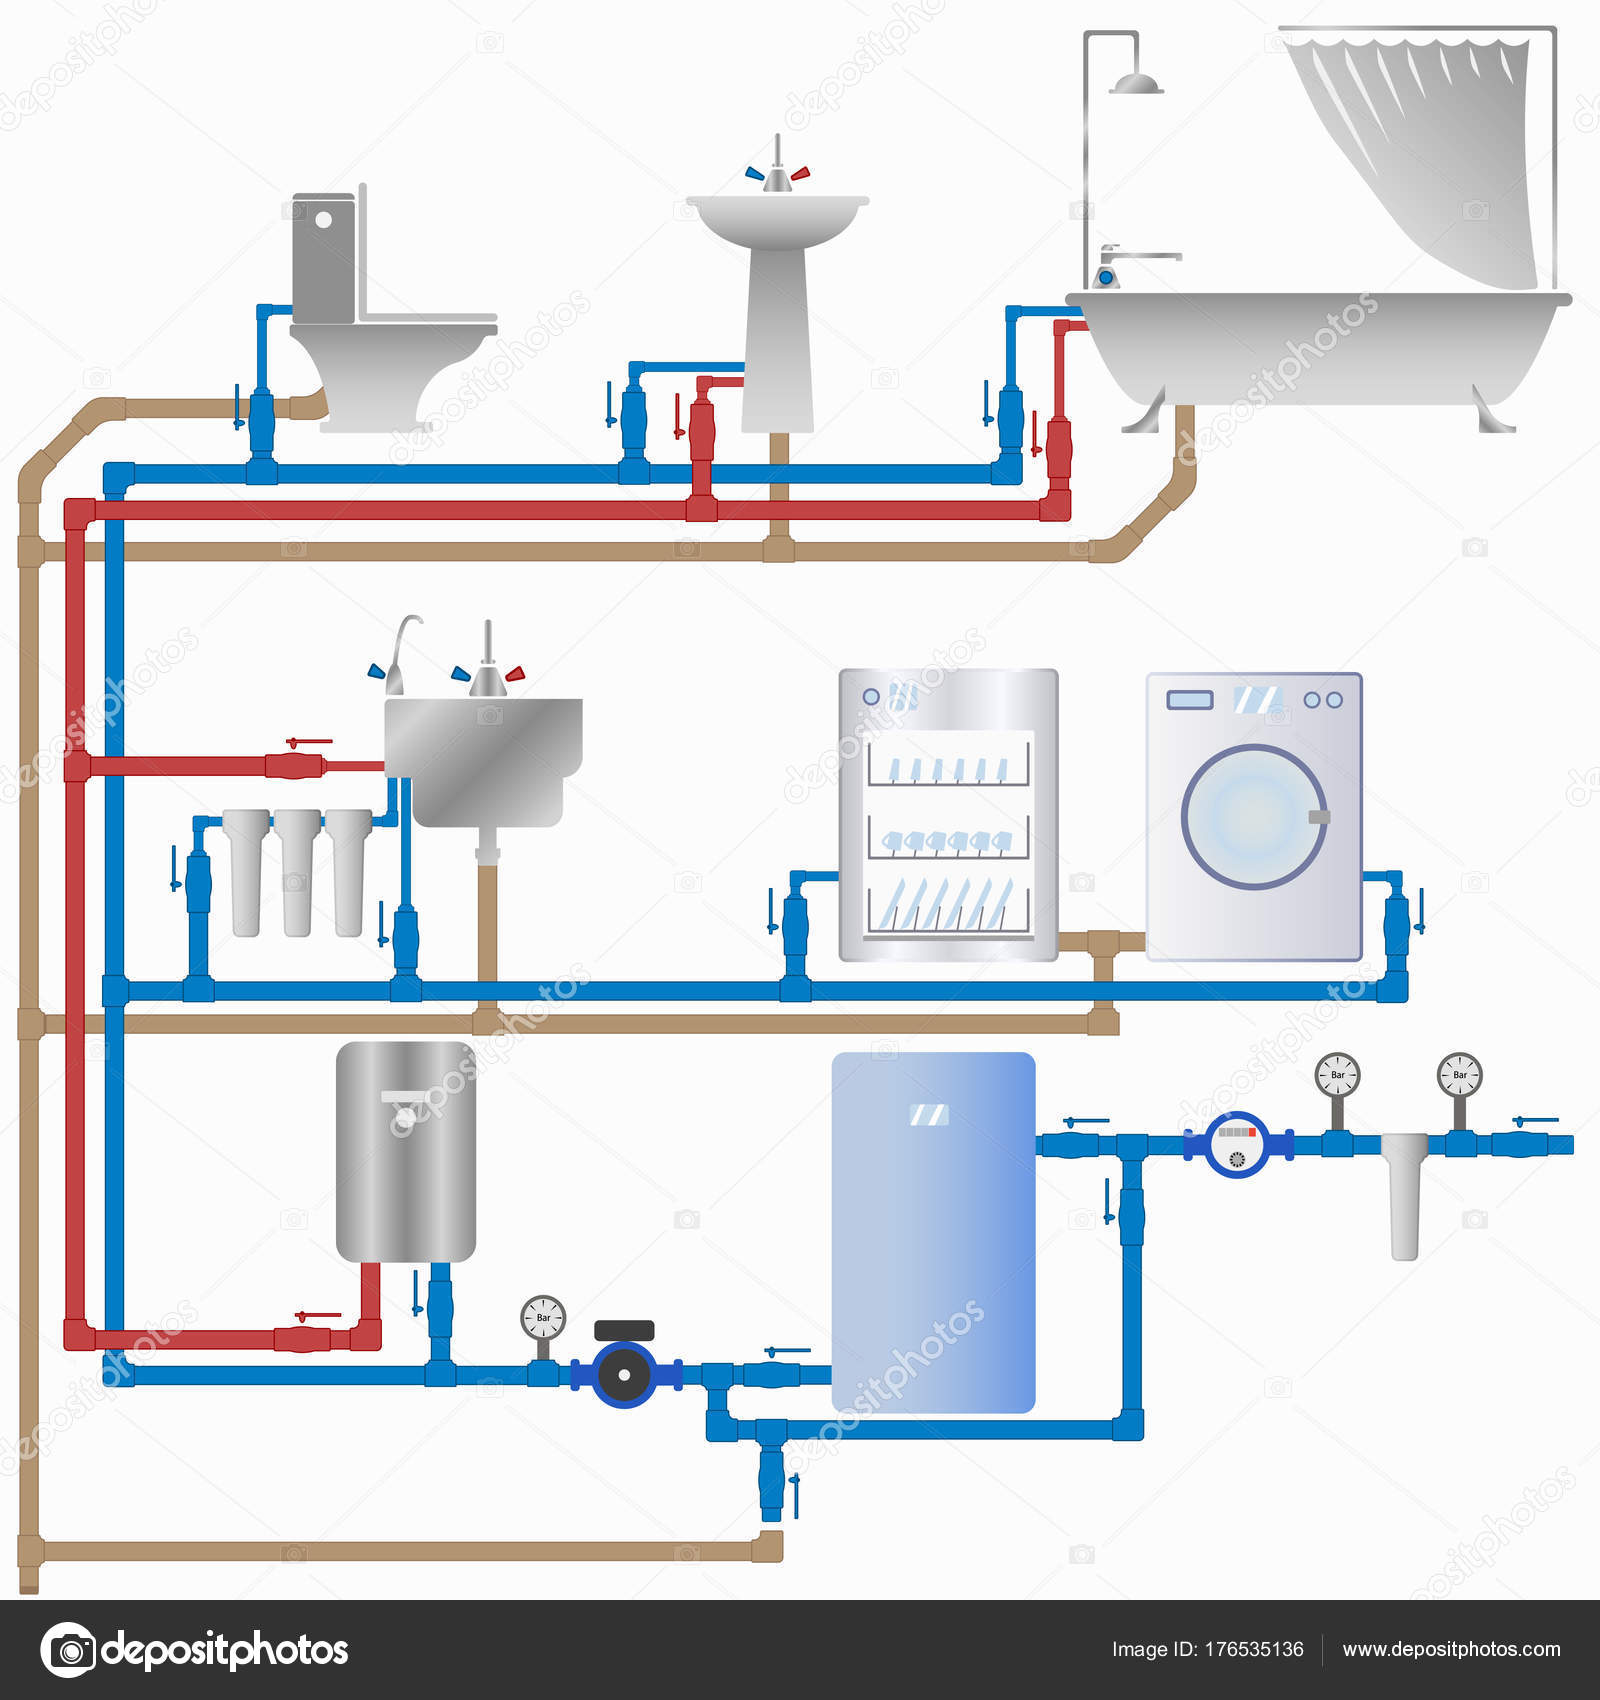 hight resolution of water supply and sewerage system in the house stock vector